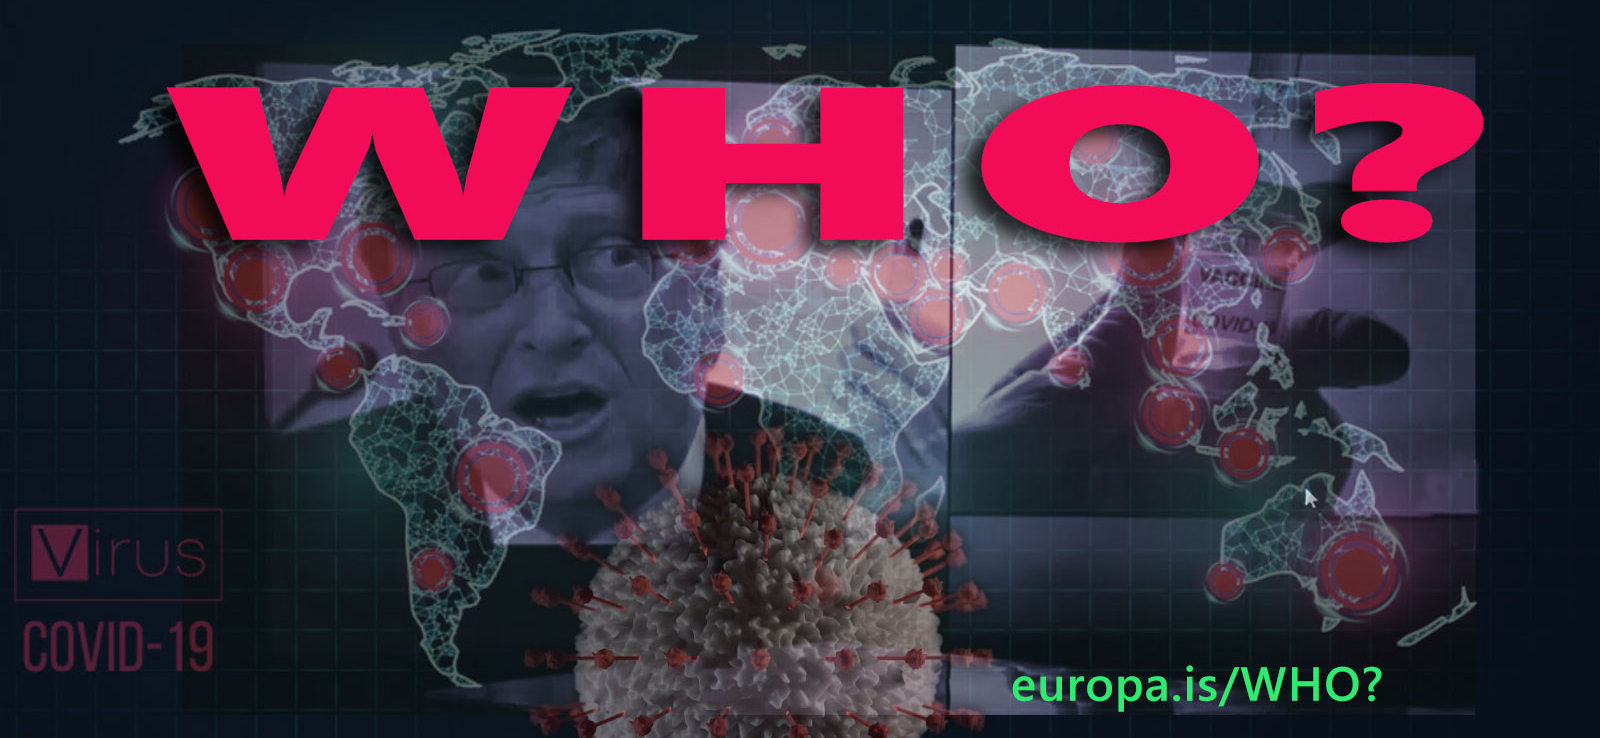 Who is WHO (World Health Organization)?